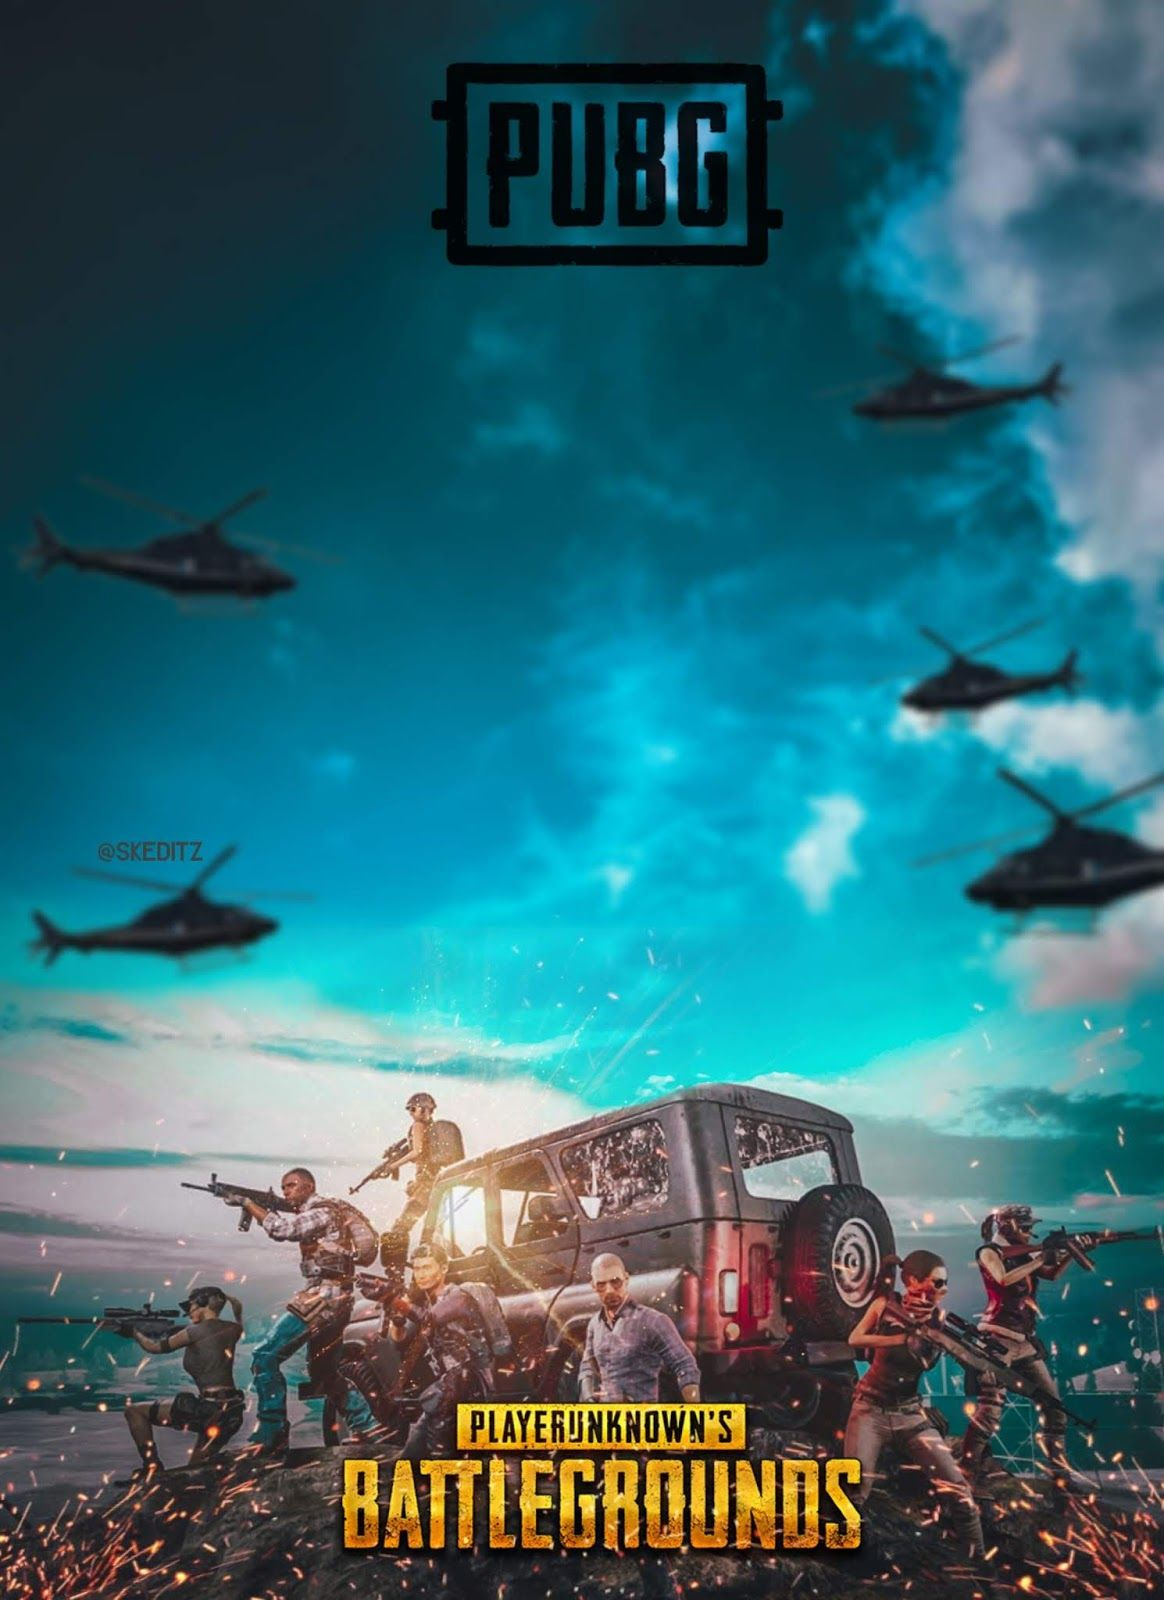 Pubg Photo Editing Backgrounds Hd Download He Amit Editing Best Background Images Picsart Background New Background Images Pubg full hd cb edit background hd